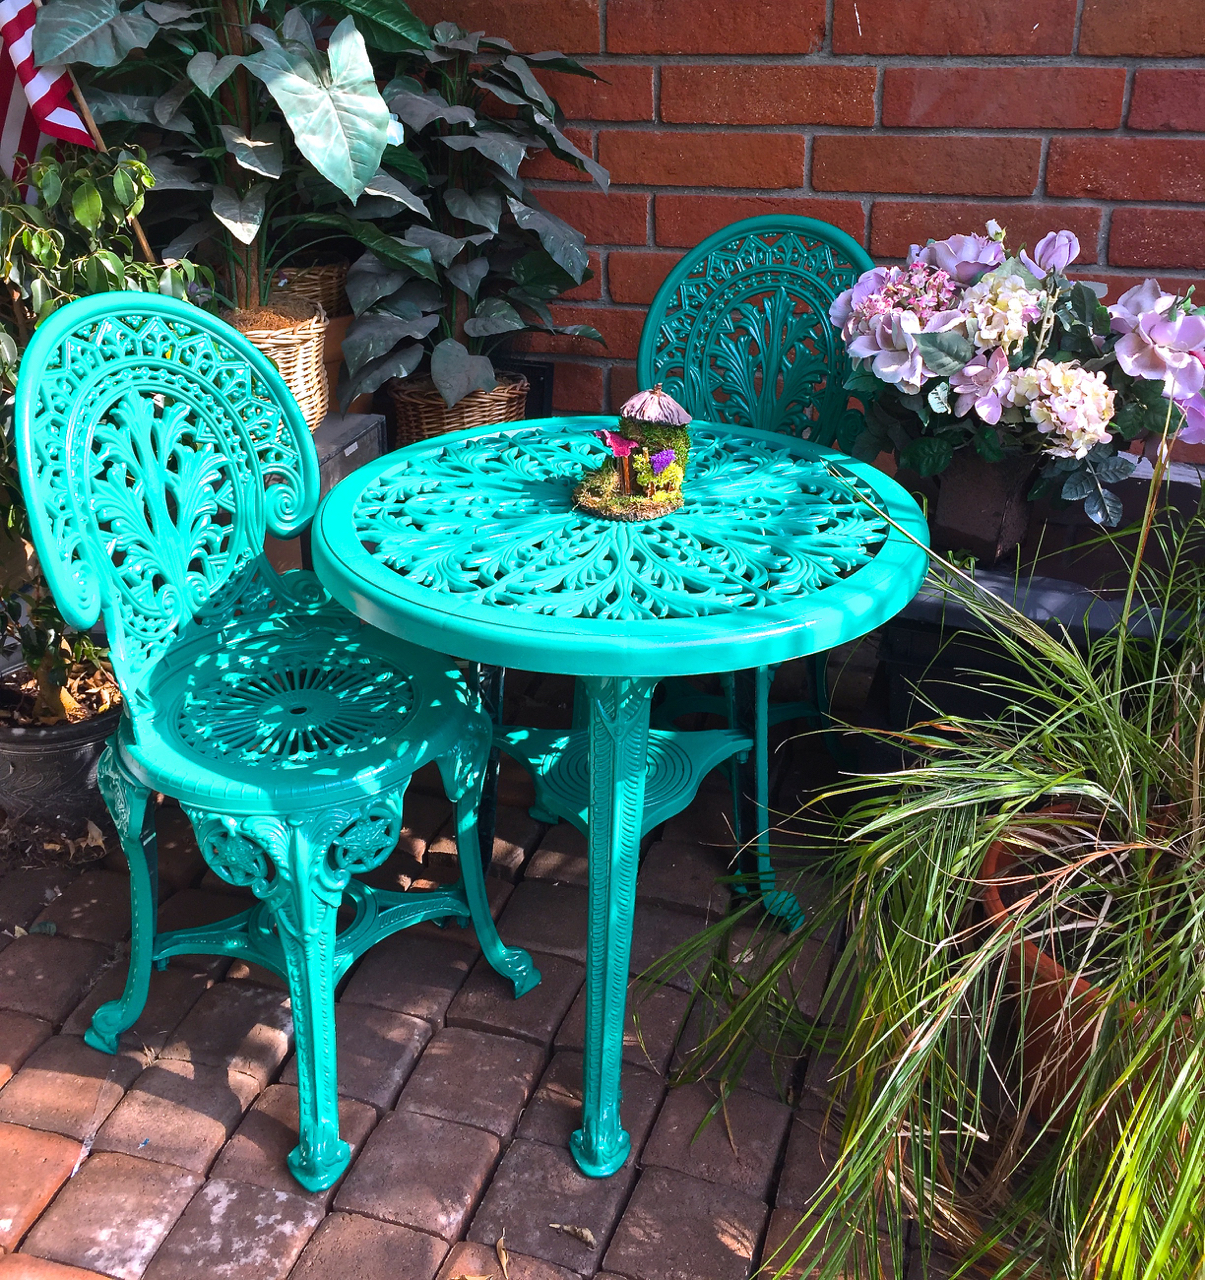 I Am So Happy With The Rust Oleum® Gloss Protectant Enamel Product In The  Rich Jade Color And How Great It Made My Furniture Look.